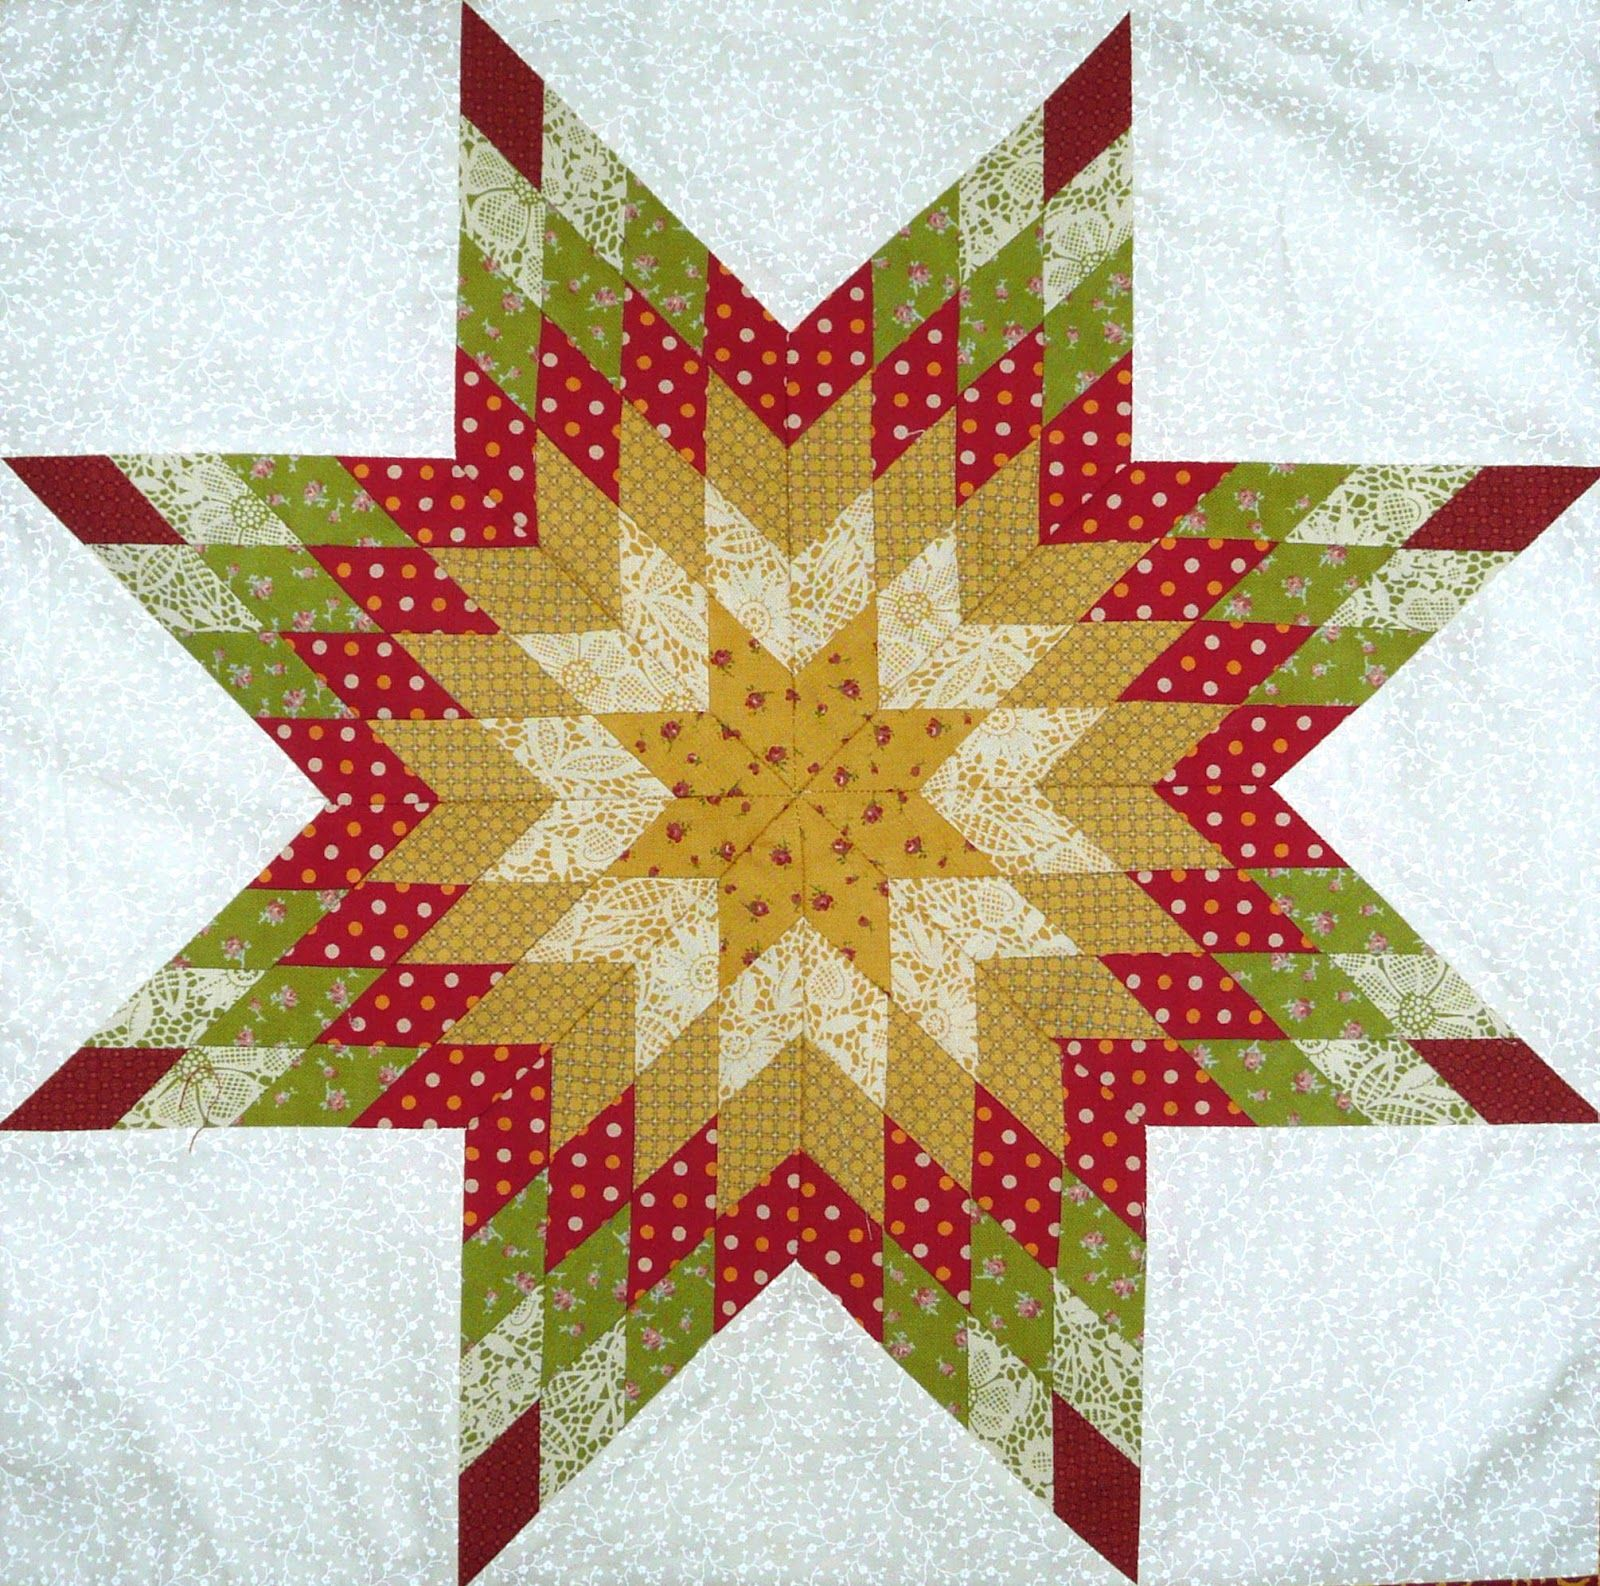 lone star quilt pattern free printable - Bing Images | Quilts ...